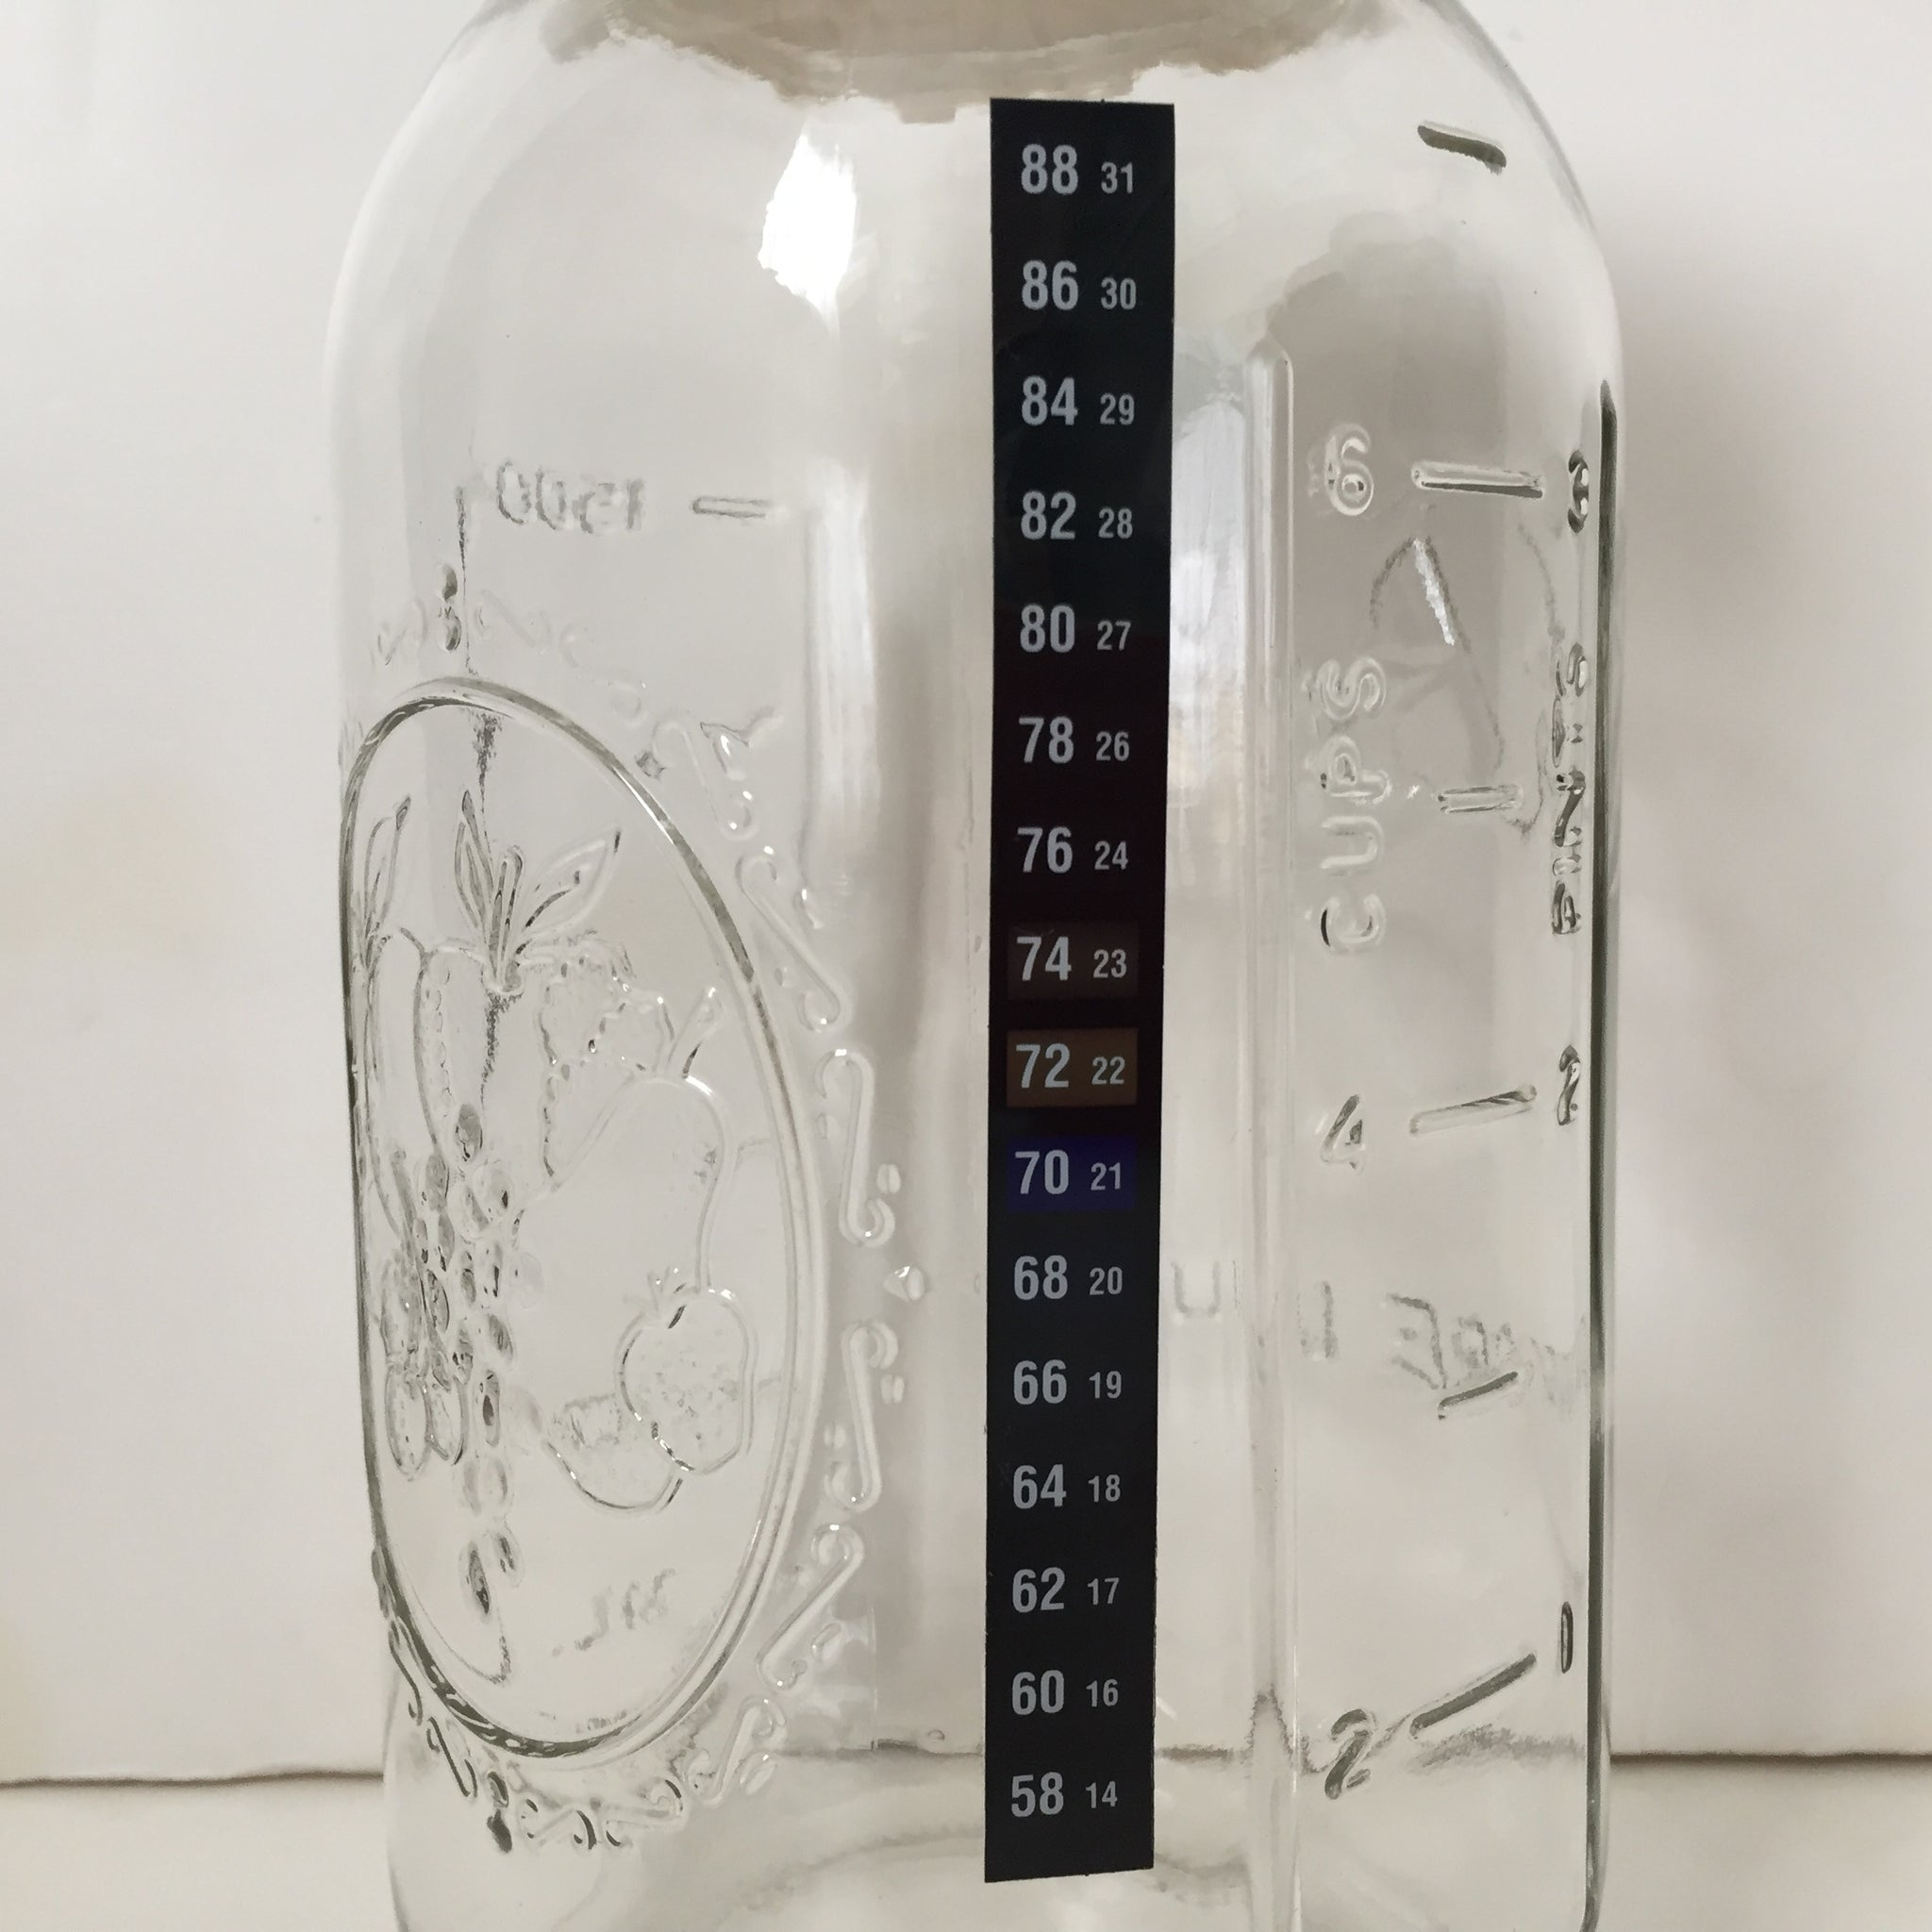 Adhesive Culturing Jar Thermometer - Yemoos Nourishing Cultures